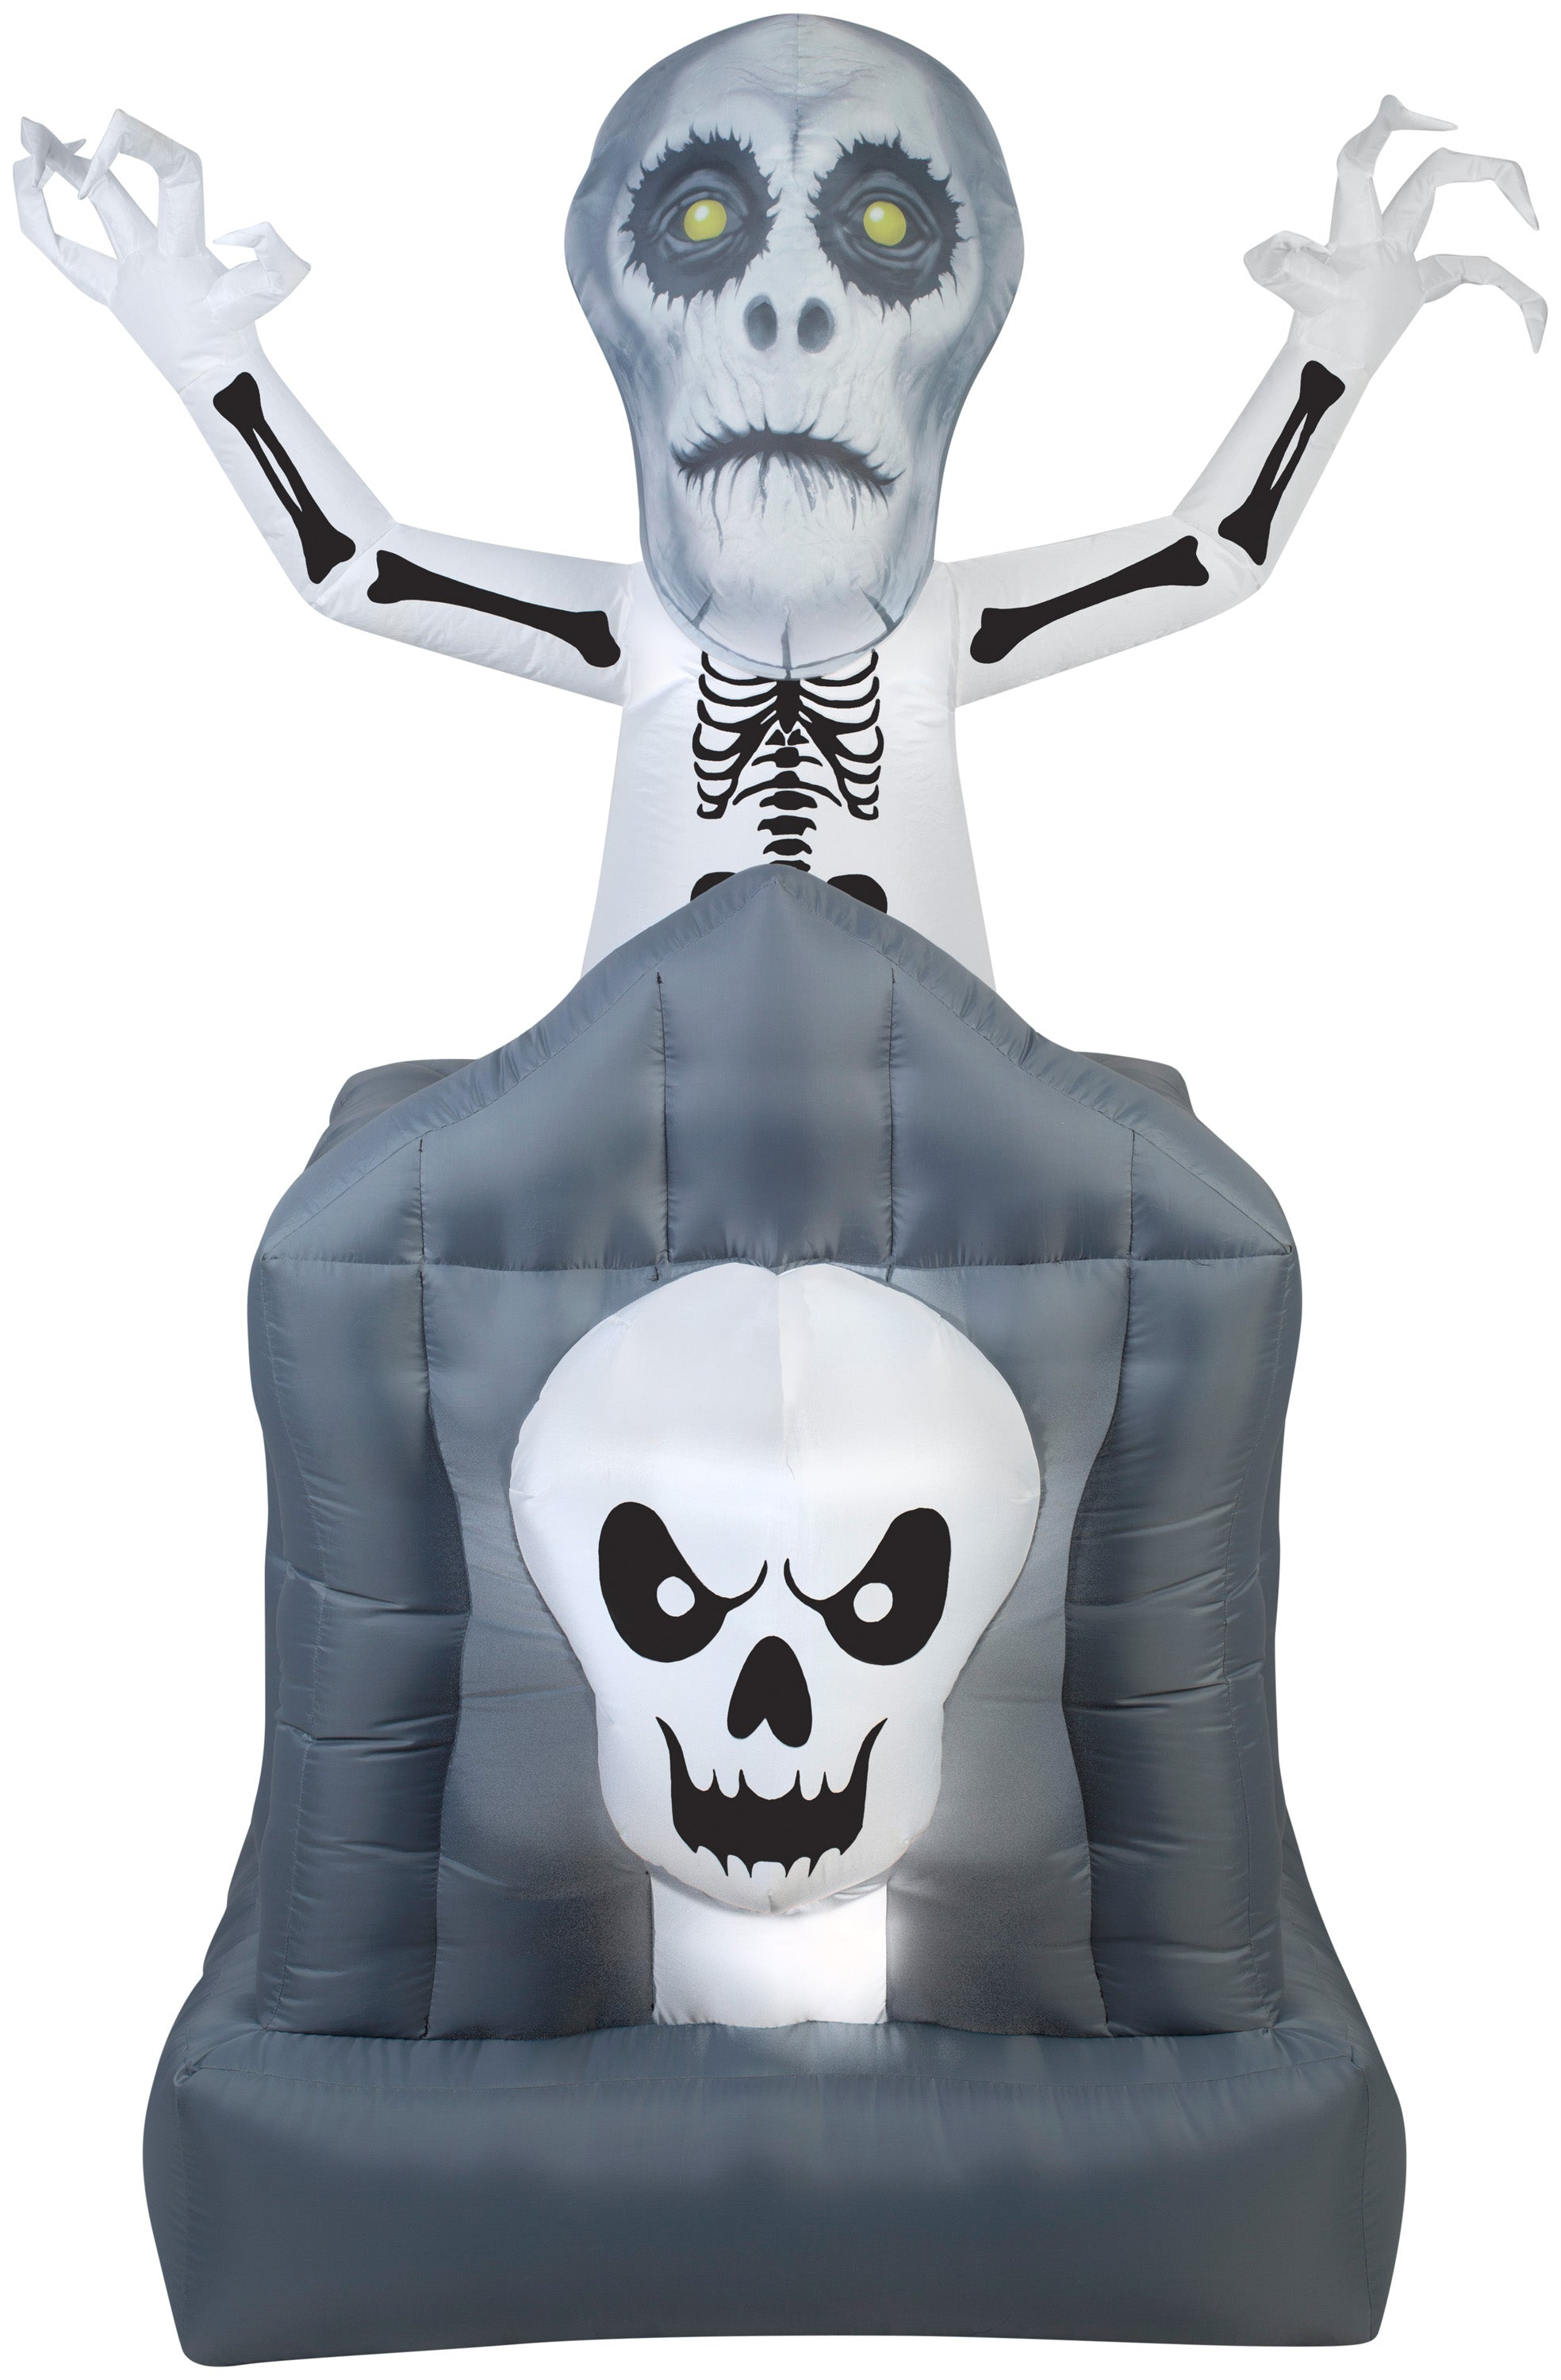 6' Animated Airblown Pop-Up Ghost in Haunted Tomb Halloween Inflatable